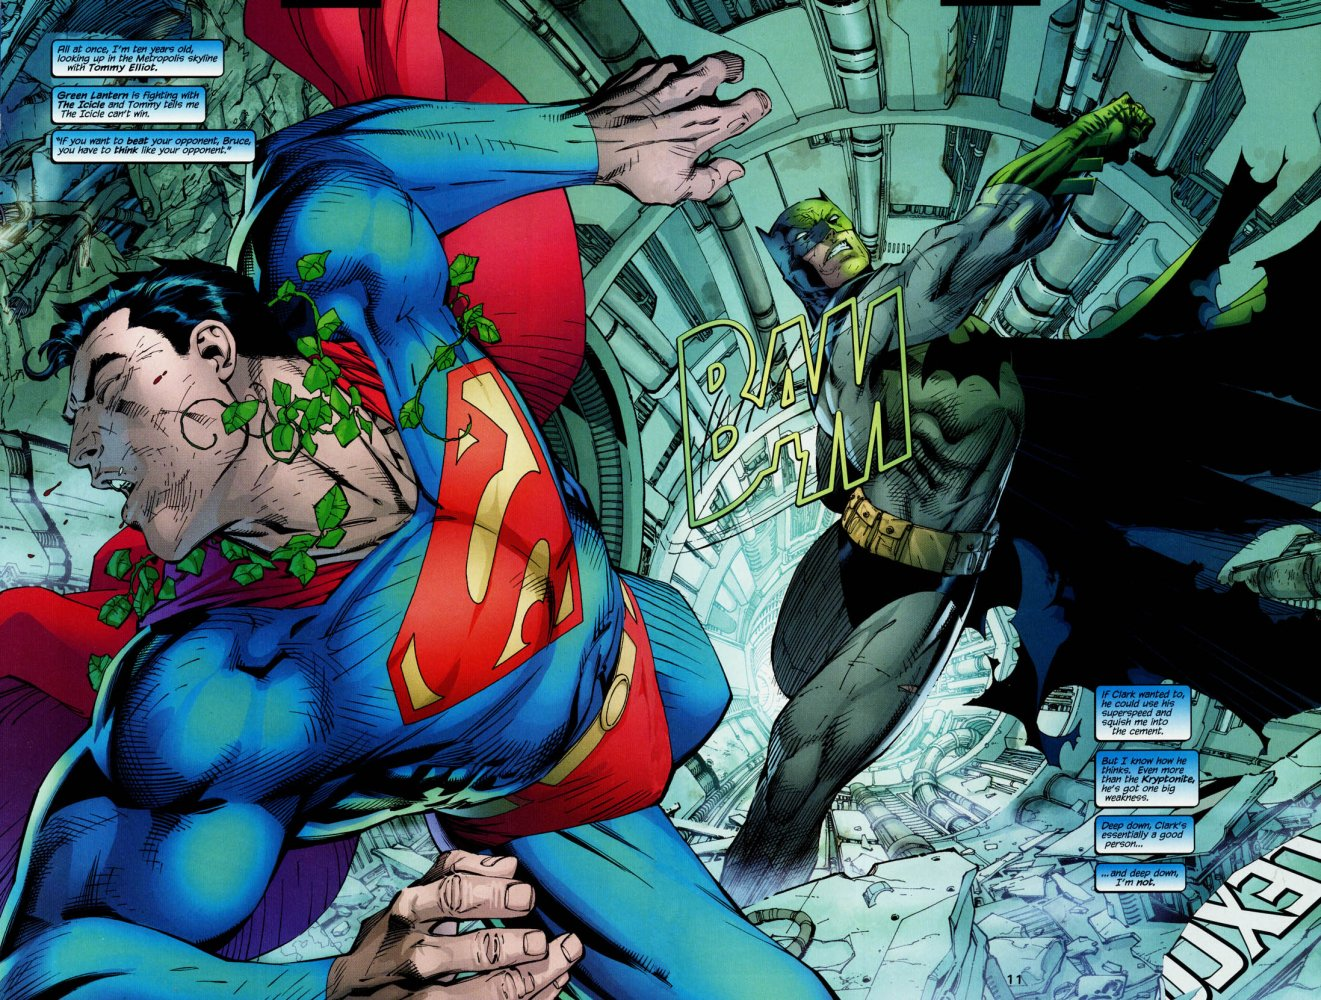 will be titled 'Superman vs. Batman' or 'Batman vs. Superman